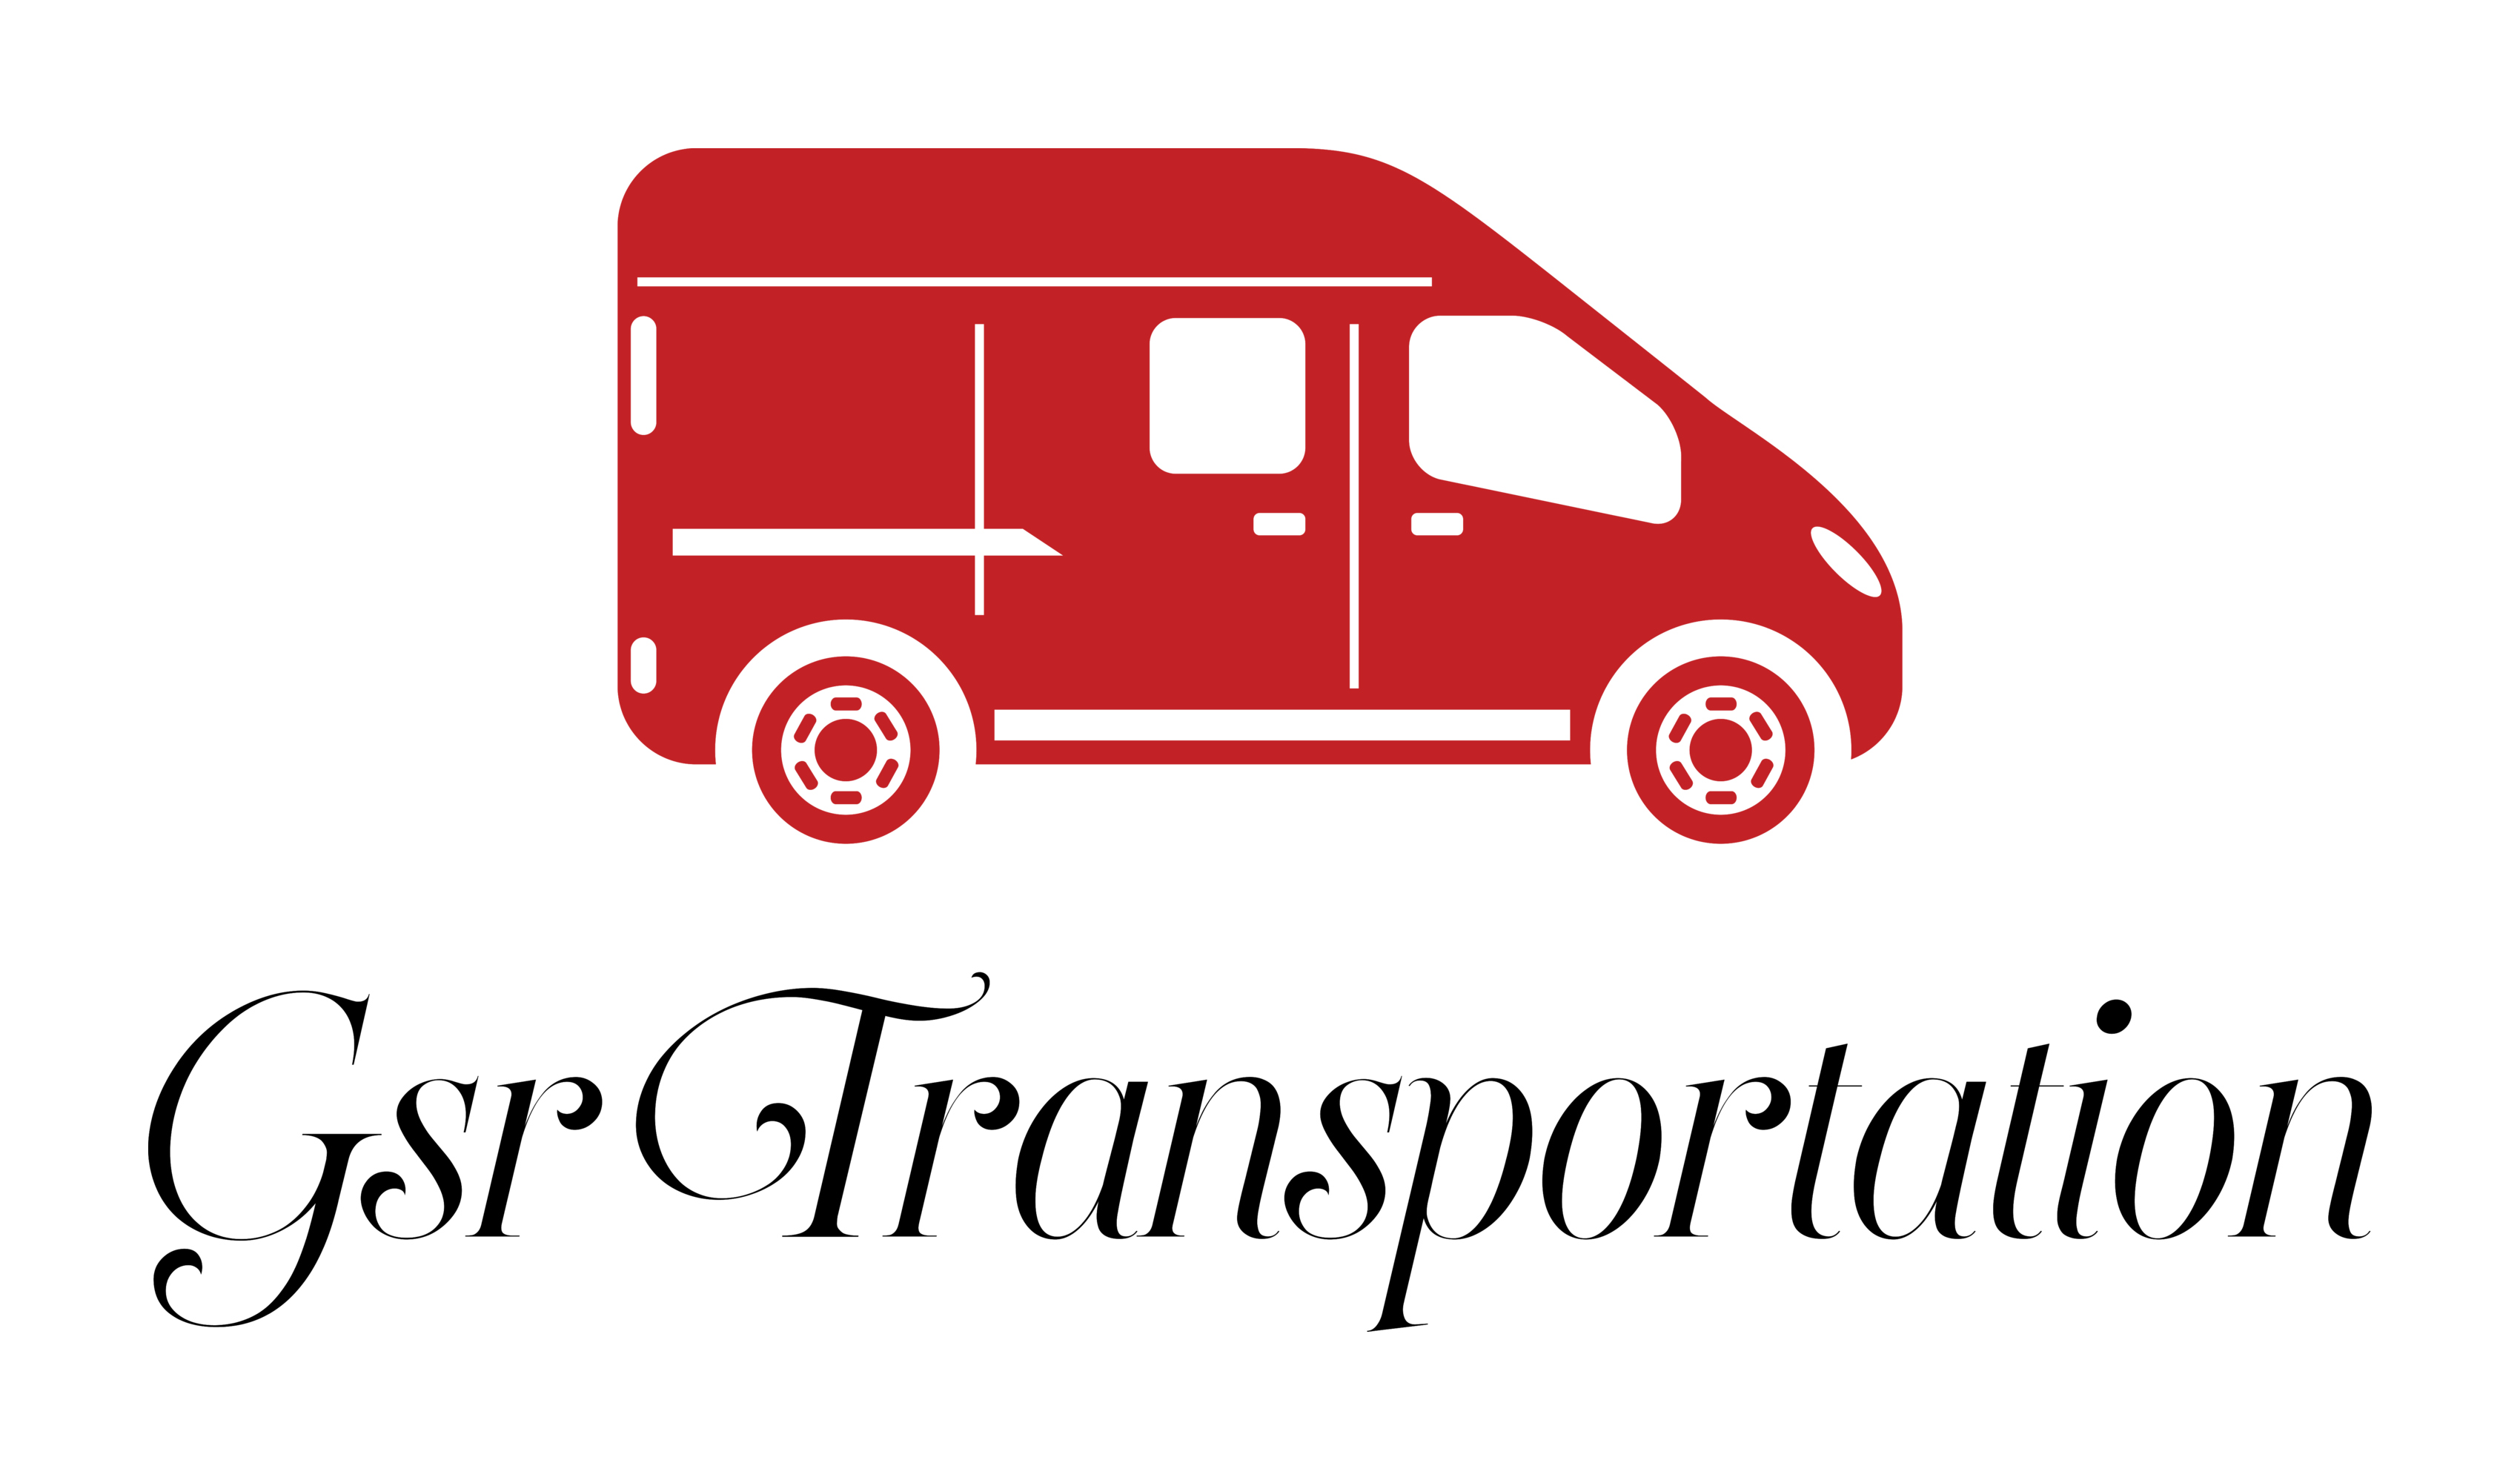 Minivan clipart van delivery. Find couriers and truckers